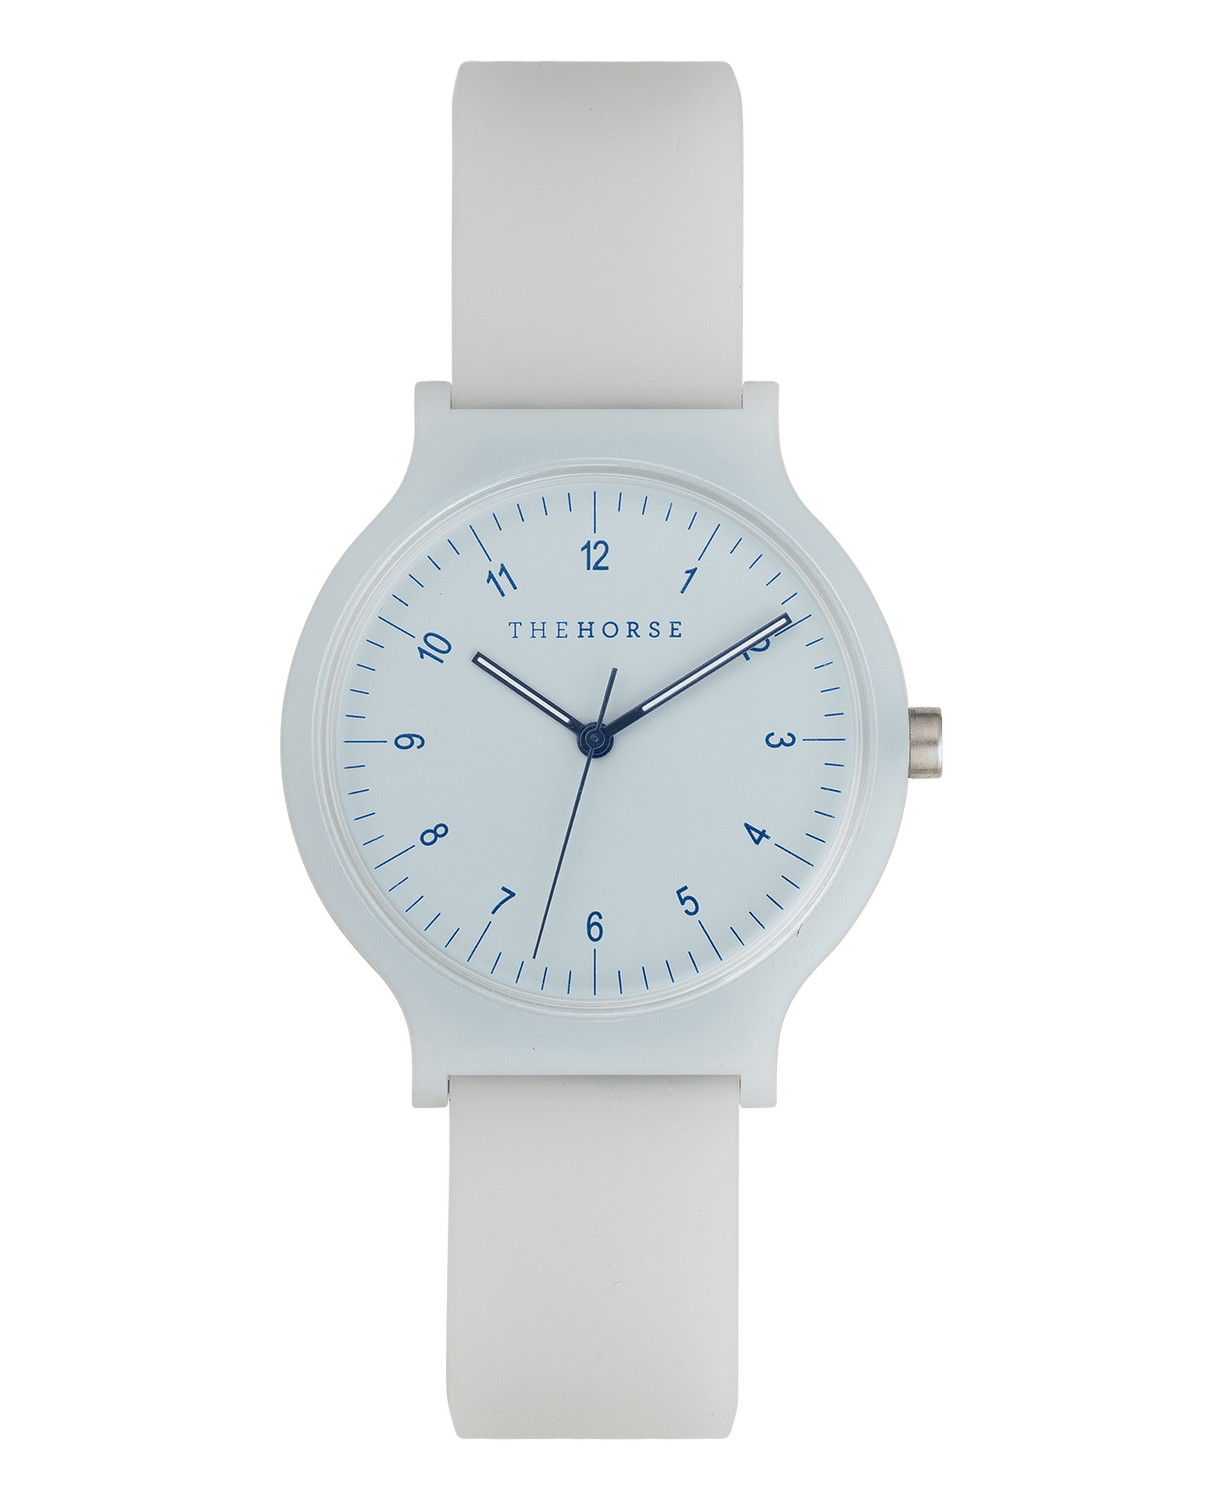 SA8 The Horse Blockout Unisex Watch in Powder Blue. Compendium Design Store, Fremantle. AfterPay, ZipPay accepted.